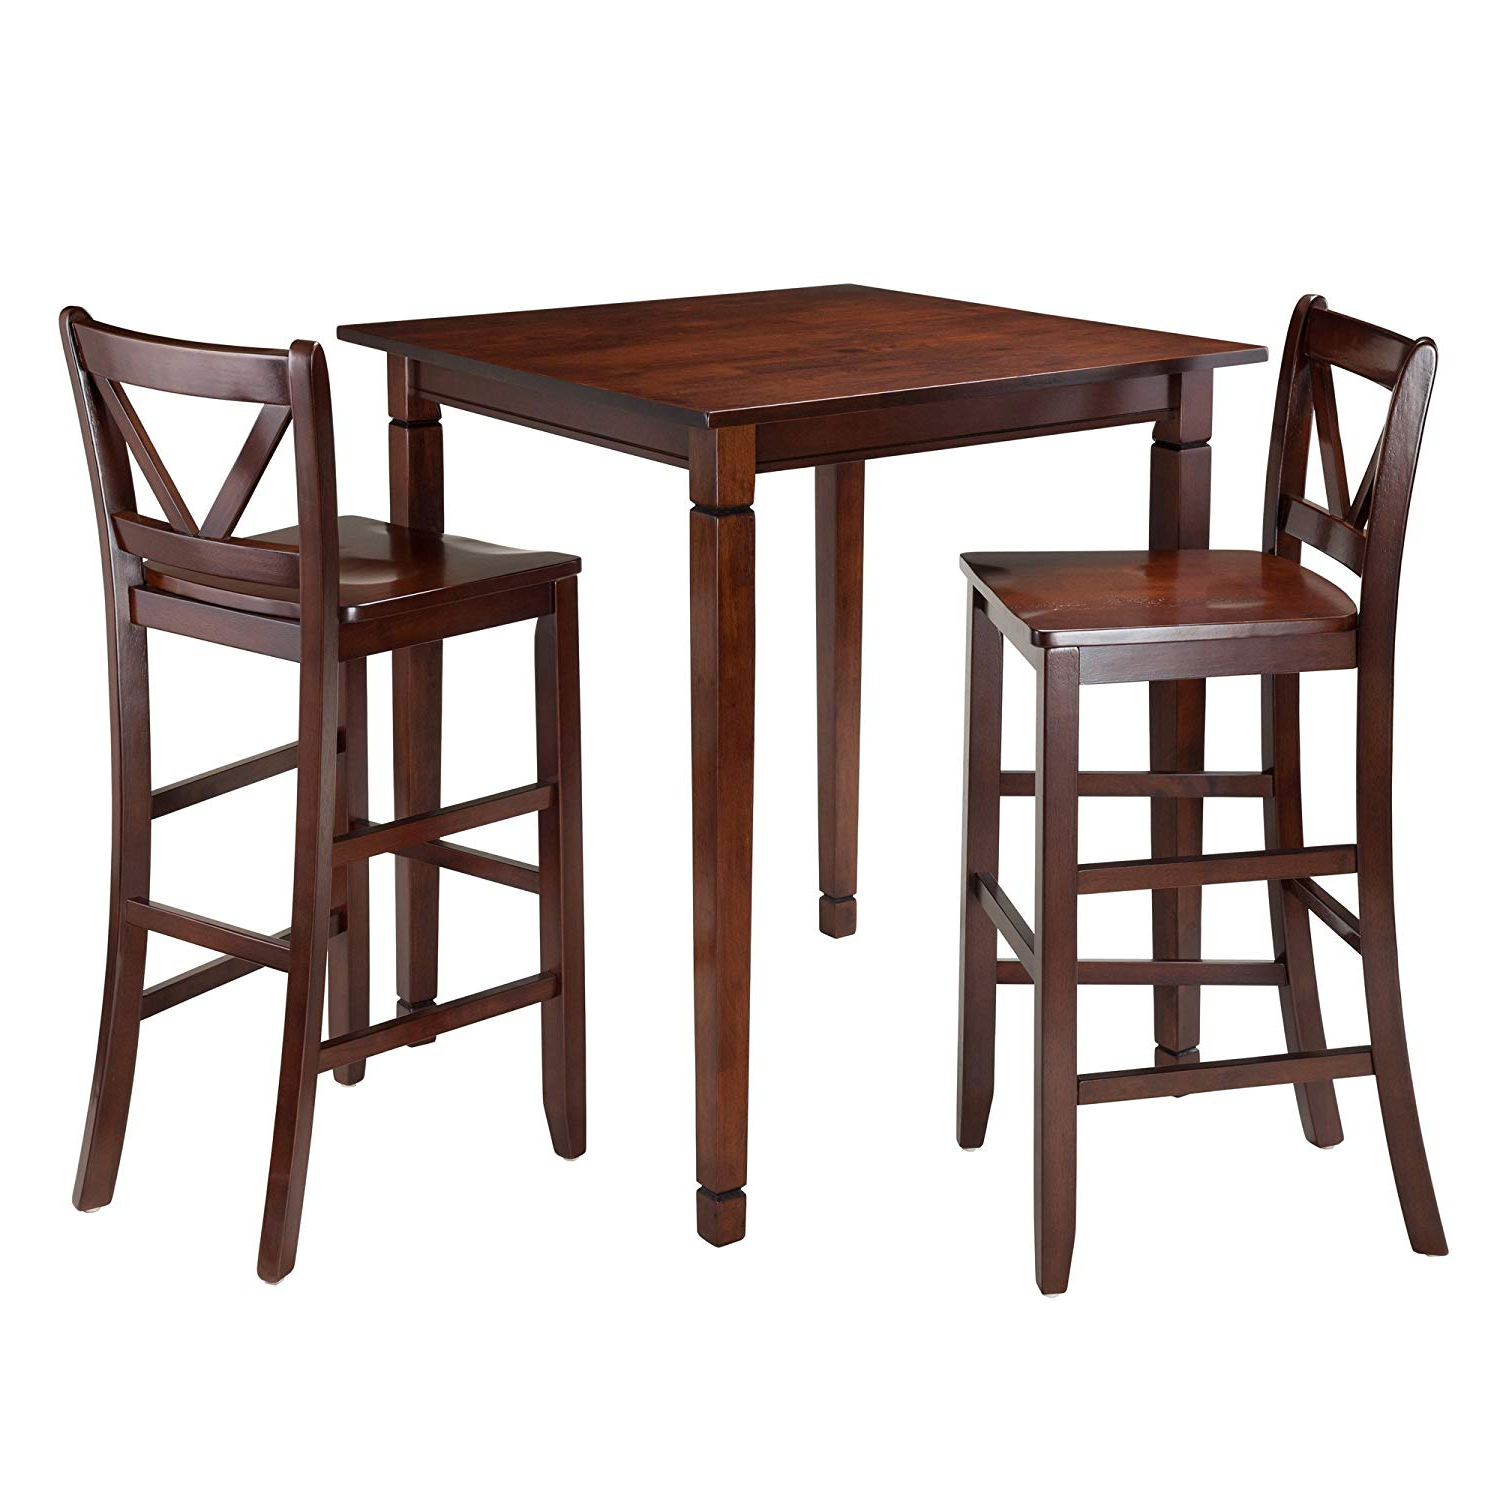 Winsome 3 Piece Kingsgate Dining Table With 2 Bar V Back Chairs, Brown Pertaining To Best And Newest Winsome 3 Piece Counter Height Dining Sets (View 16 of 20)